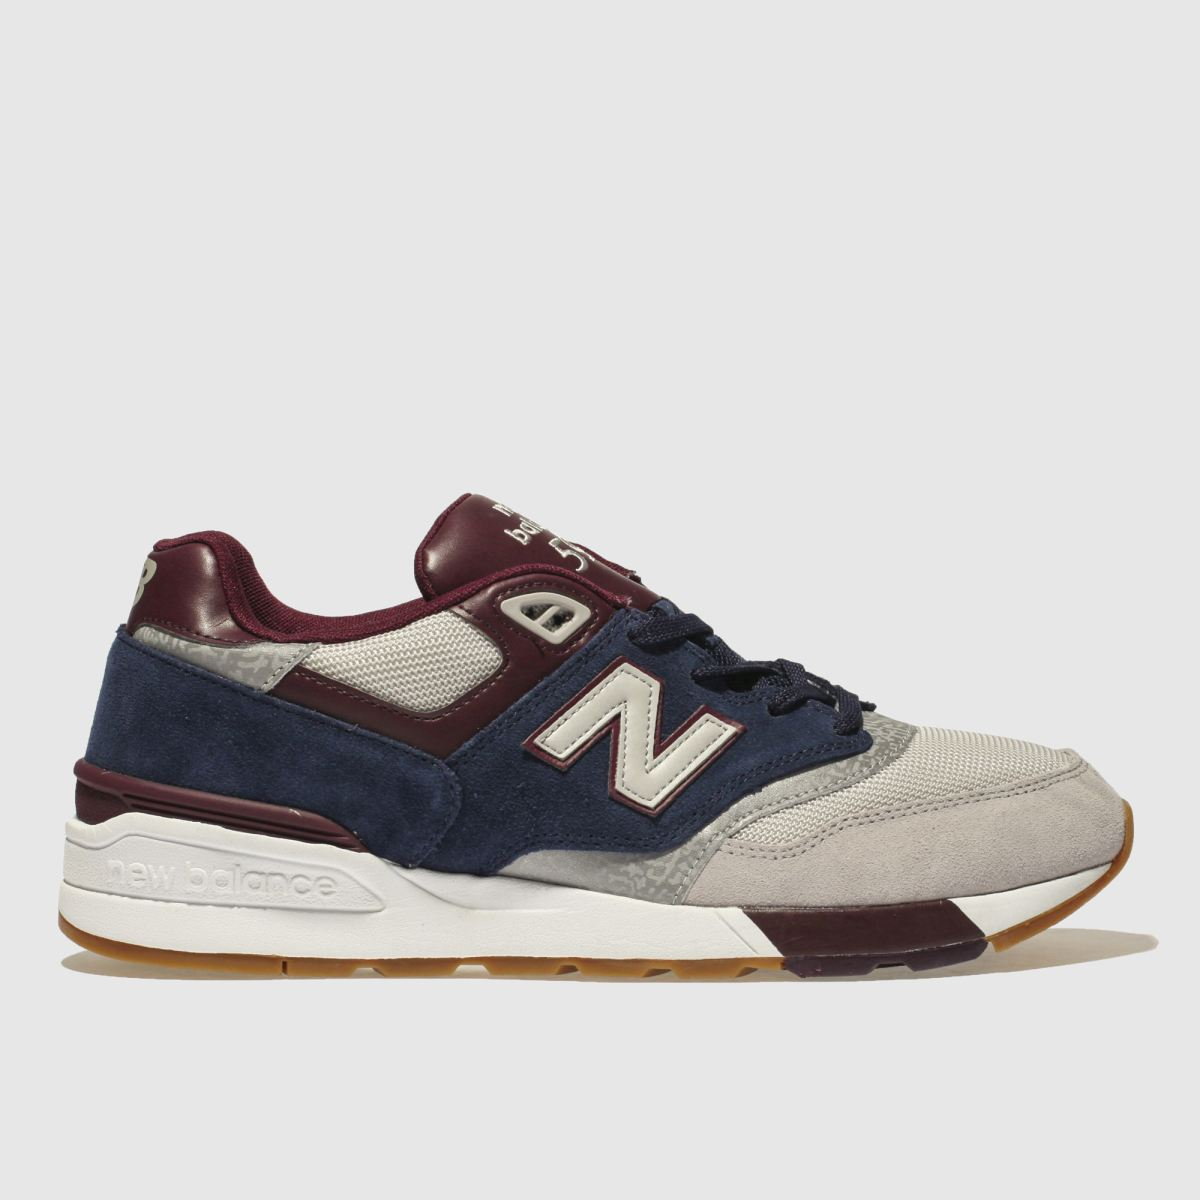 New Balance Navy & Grey 597 Trainers